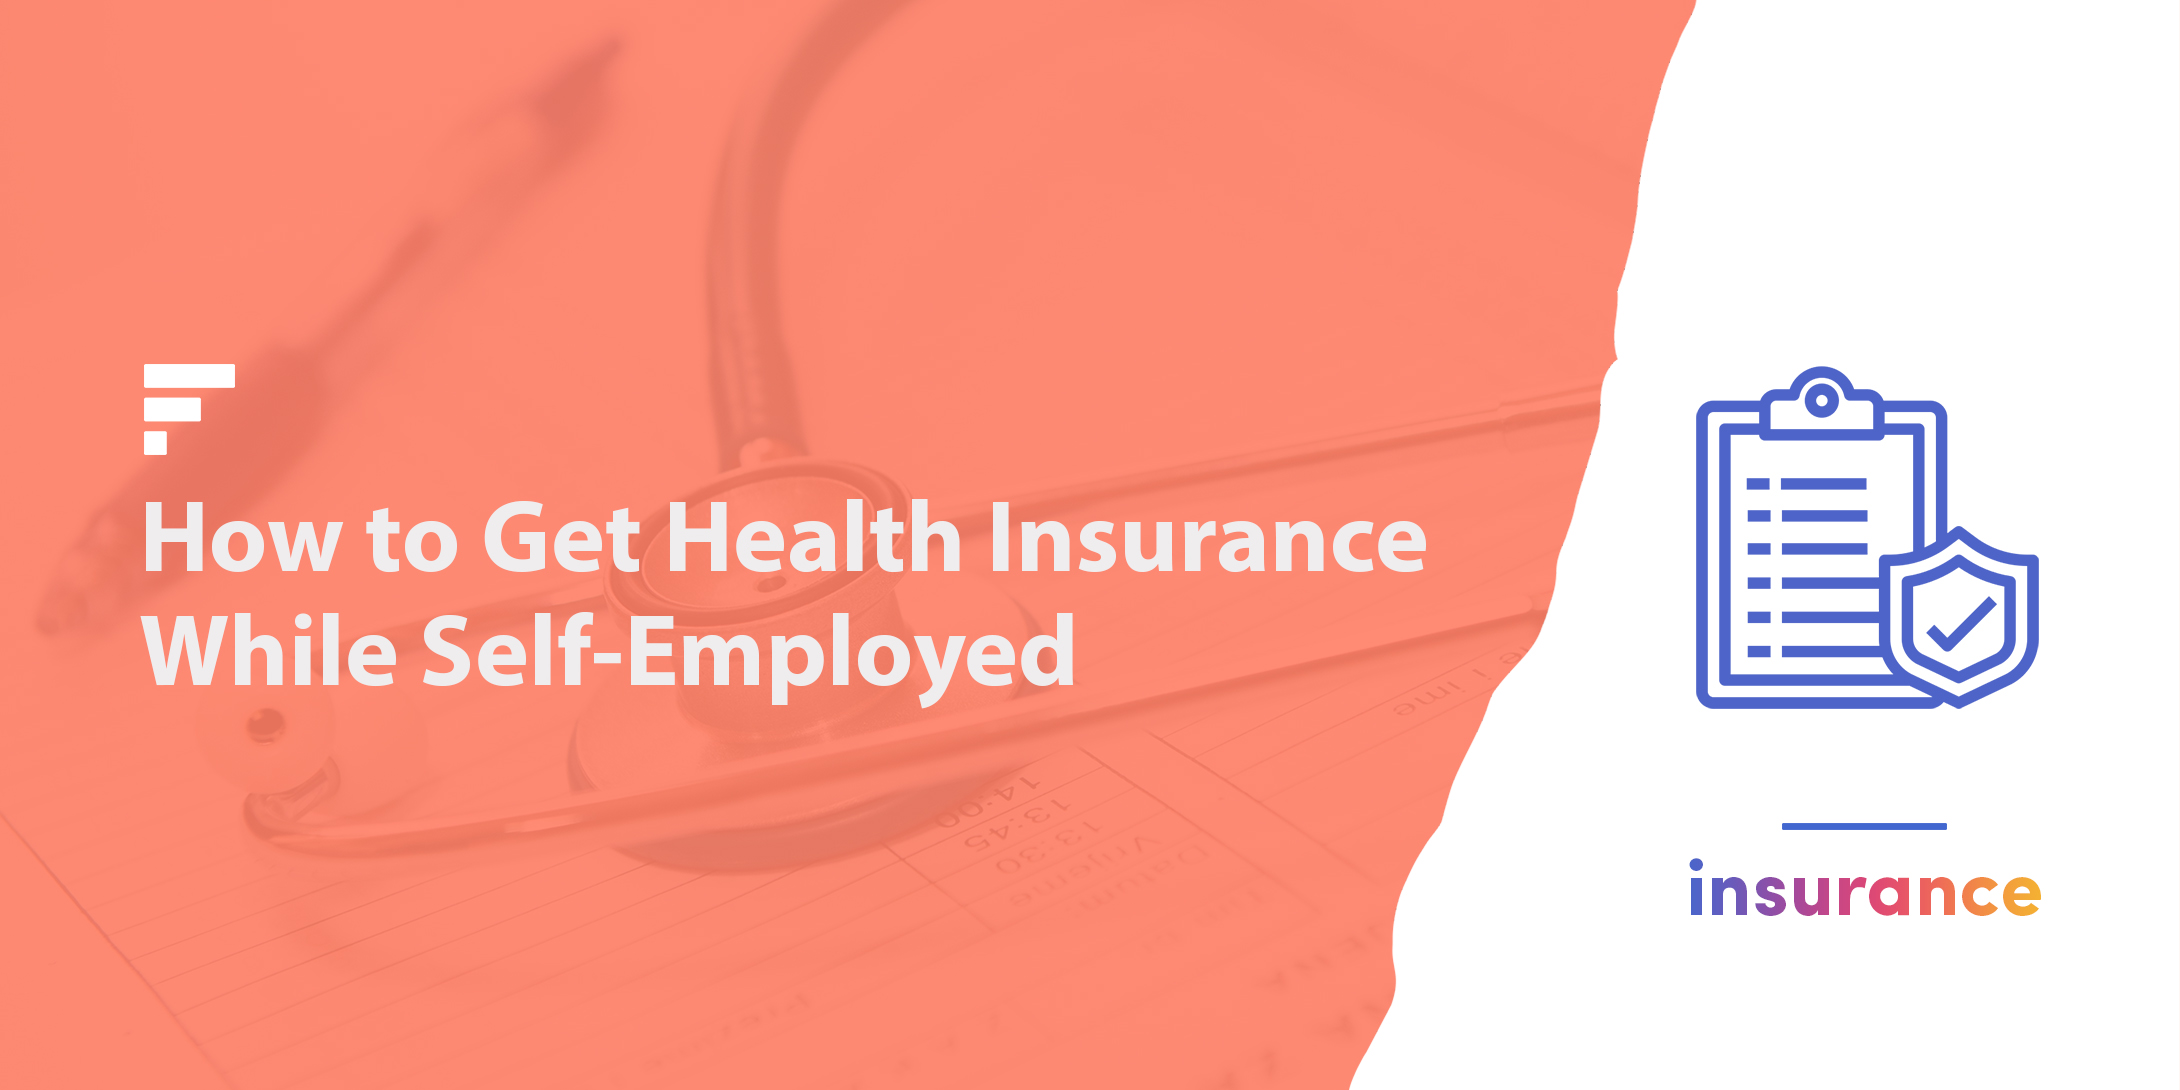 How to get health insurance while self-employed